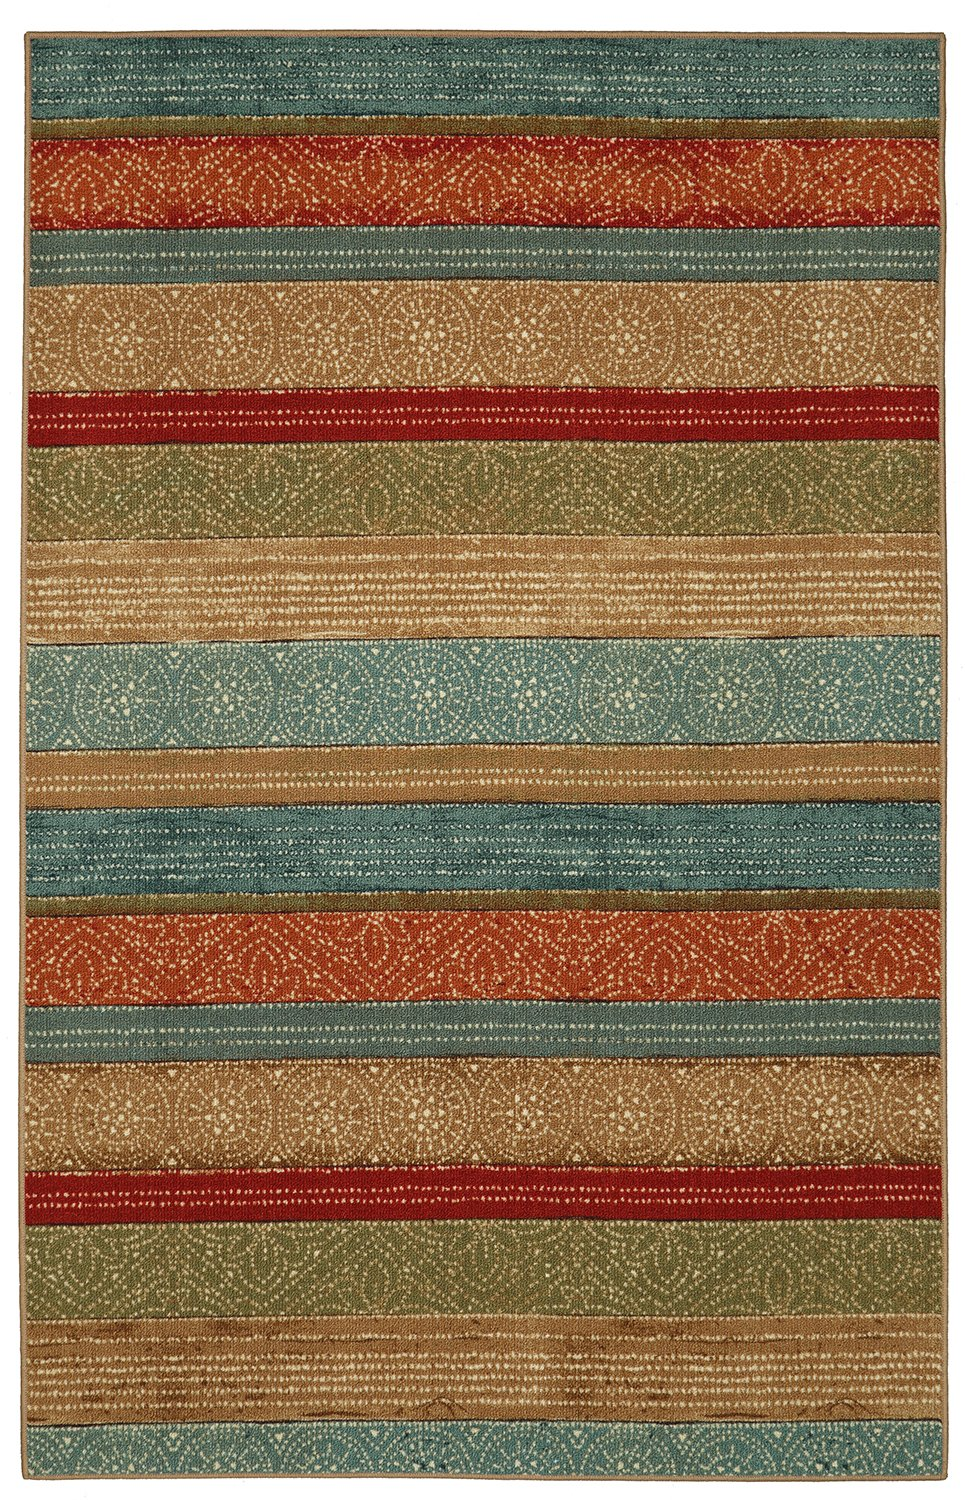 Amazon.com: Mohawk Home Soho Samsun Batik Striped Multicolor Printed Area  Rug, 7u00276x10u0027, Multicolor: Kitchen U0026 Dining